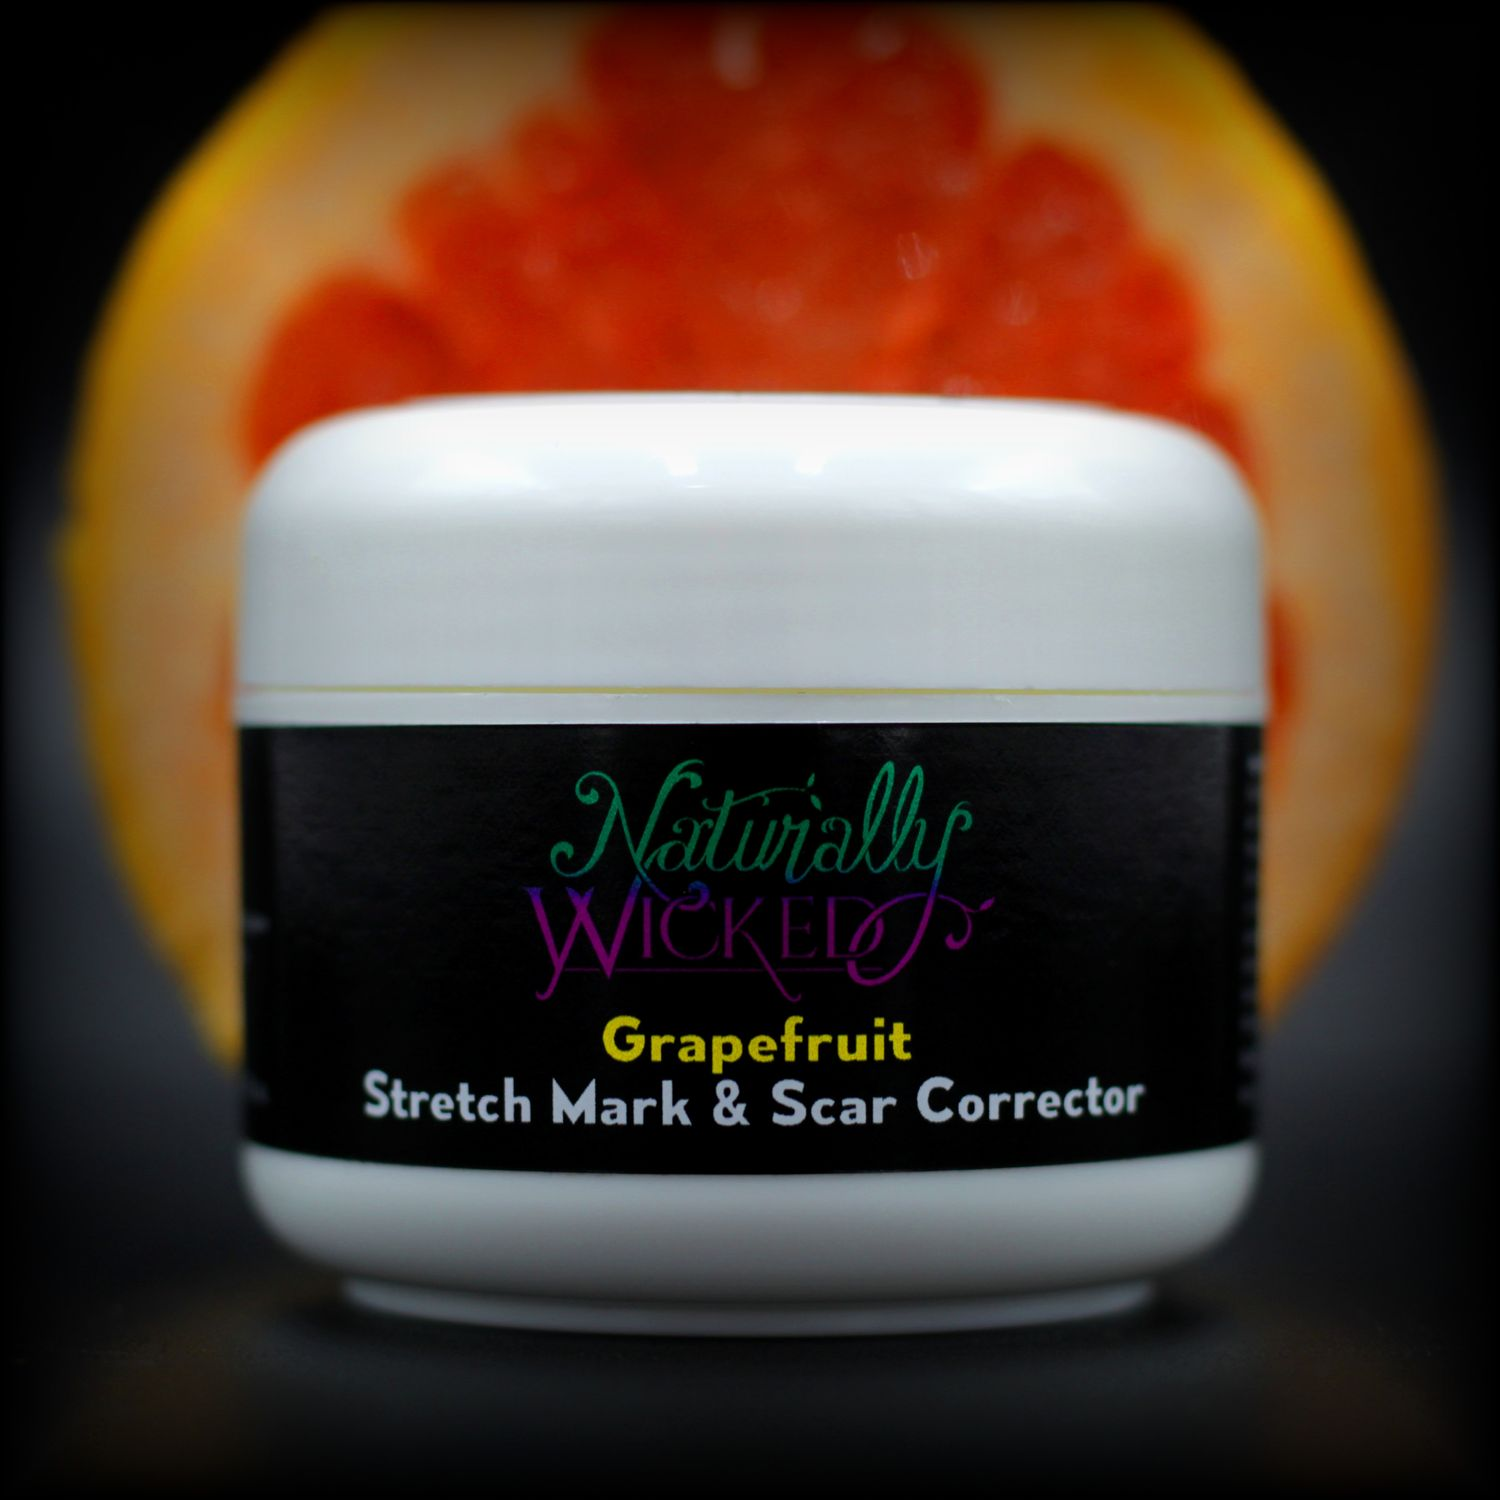 Naturally Wicked Grapefruit Stretch Mark & Scar Corrector In Front Of Red Sliced Grapefruit